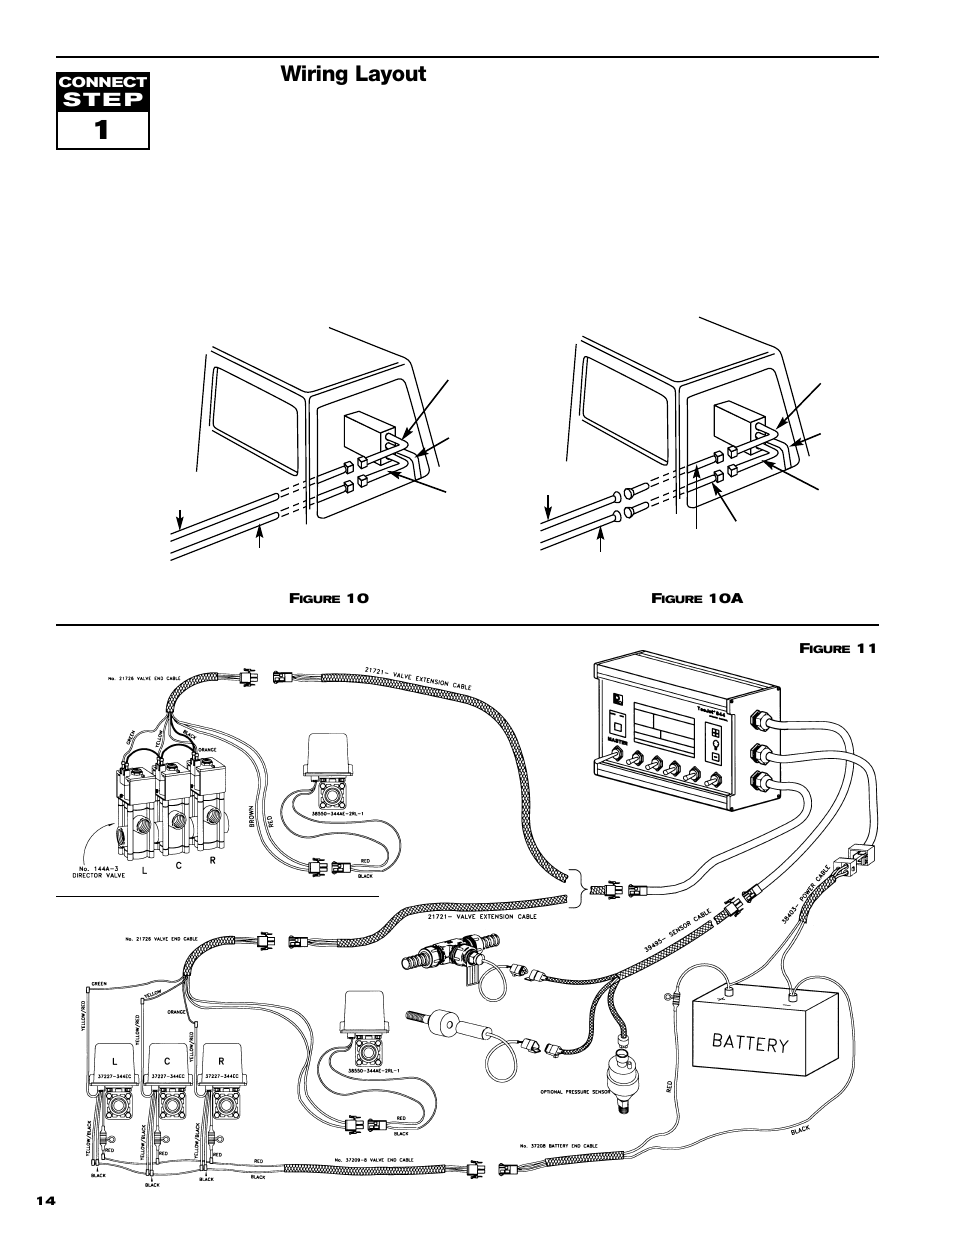 Teejet Wiring Harness Diagram Sample Yanmar 2gm Engine Layout S T E P 844 Sprayer Control User Manual Yamaha